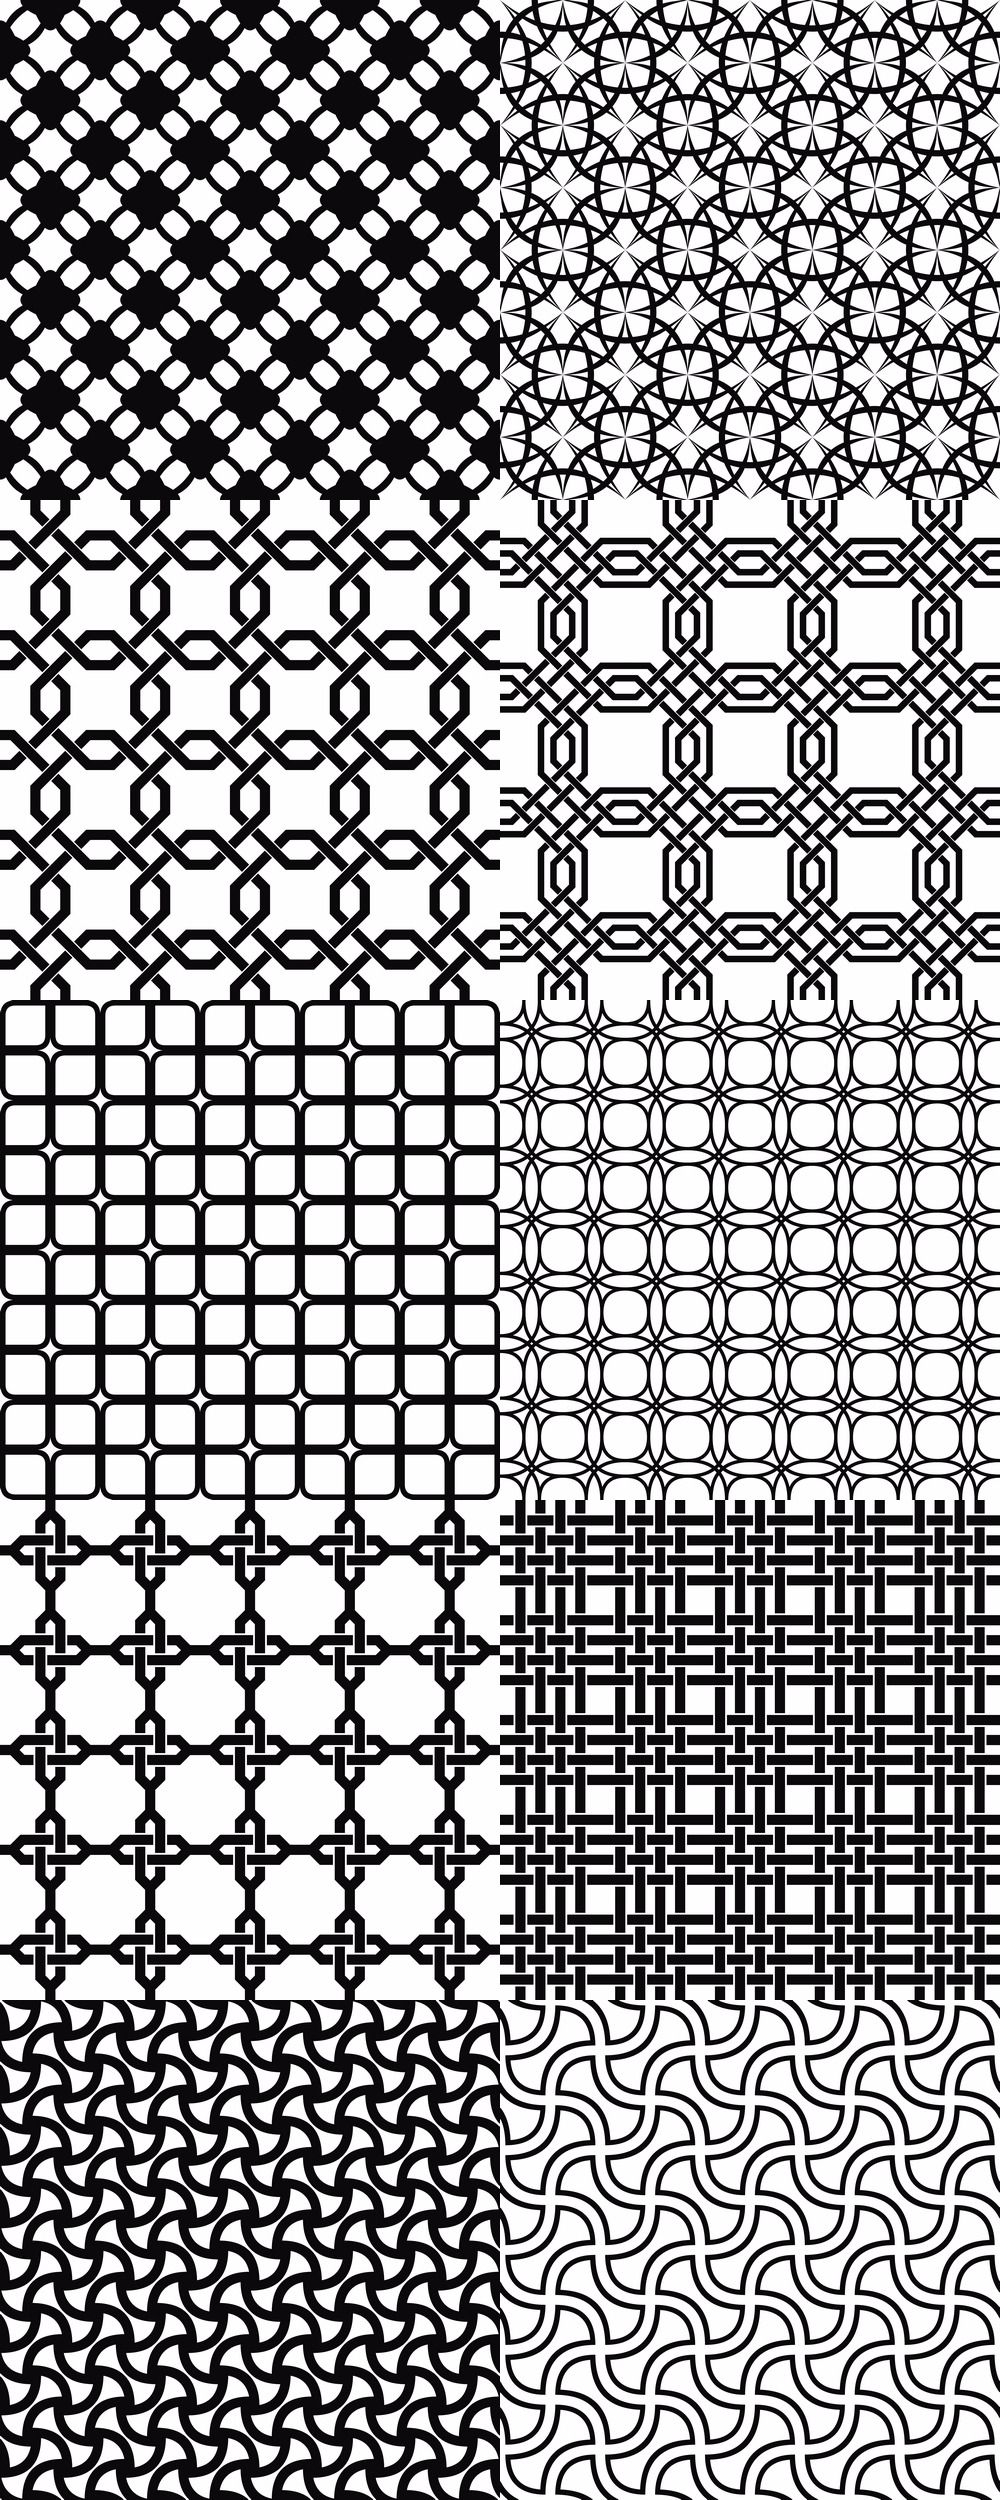 15 seamless grid patterns eps  ai  svg  jpg 5000x5000 in